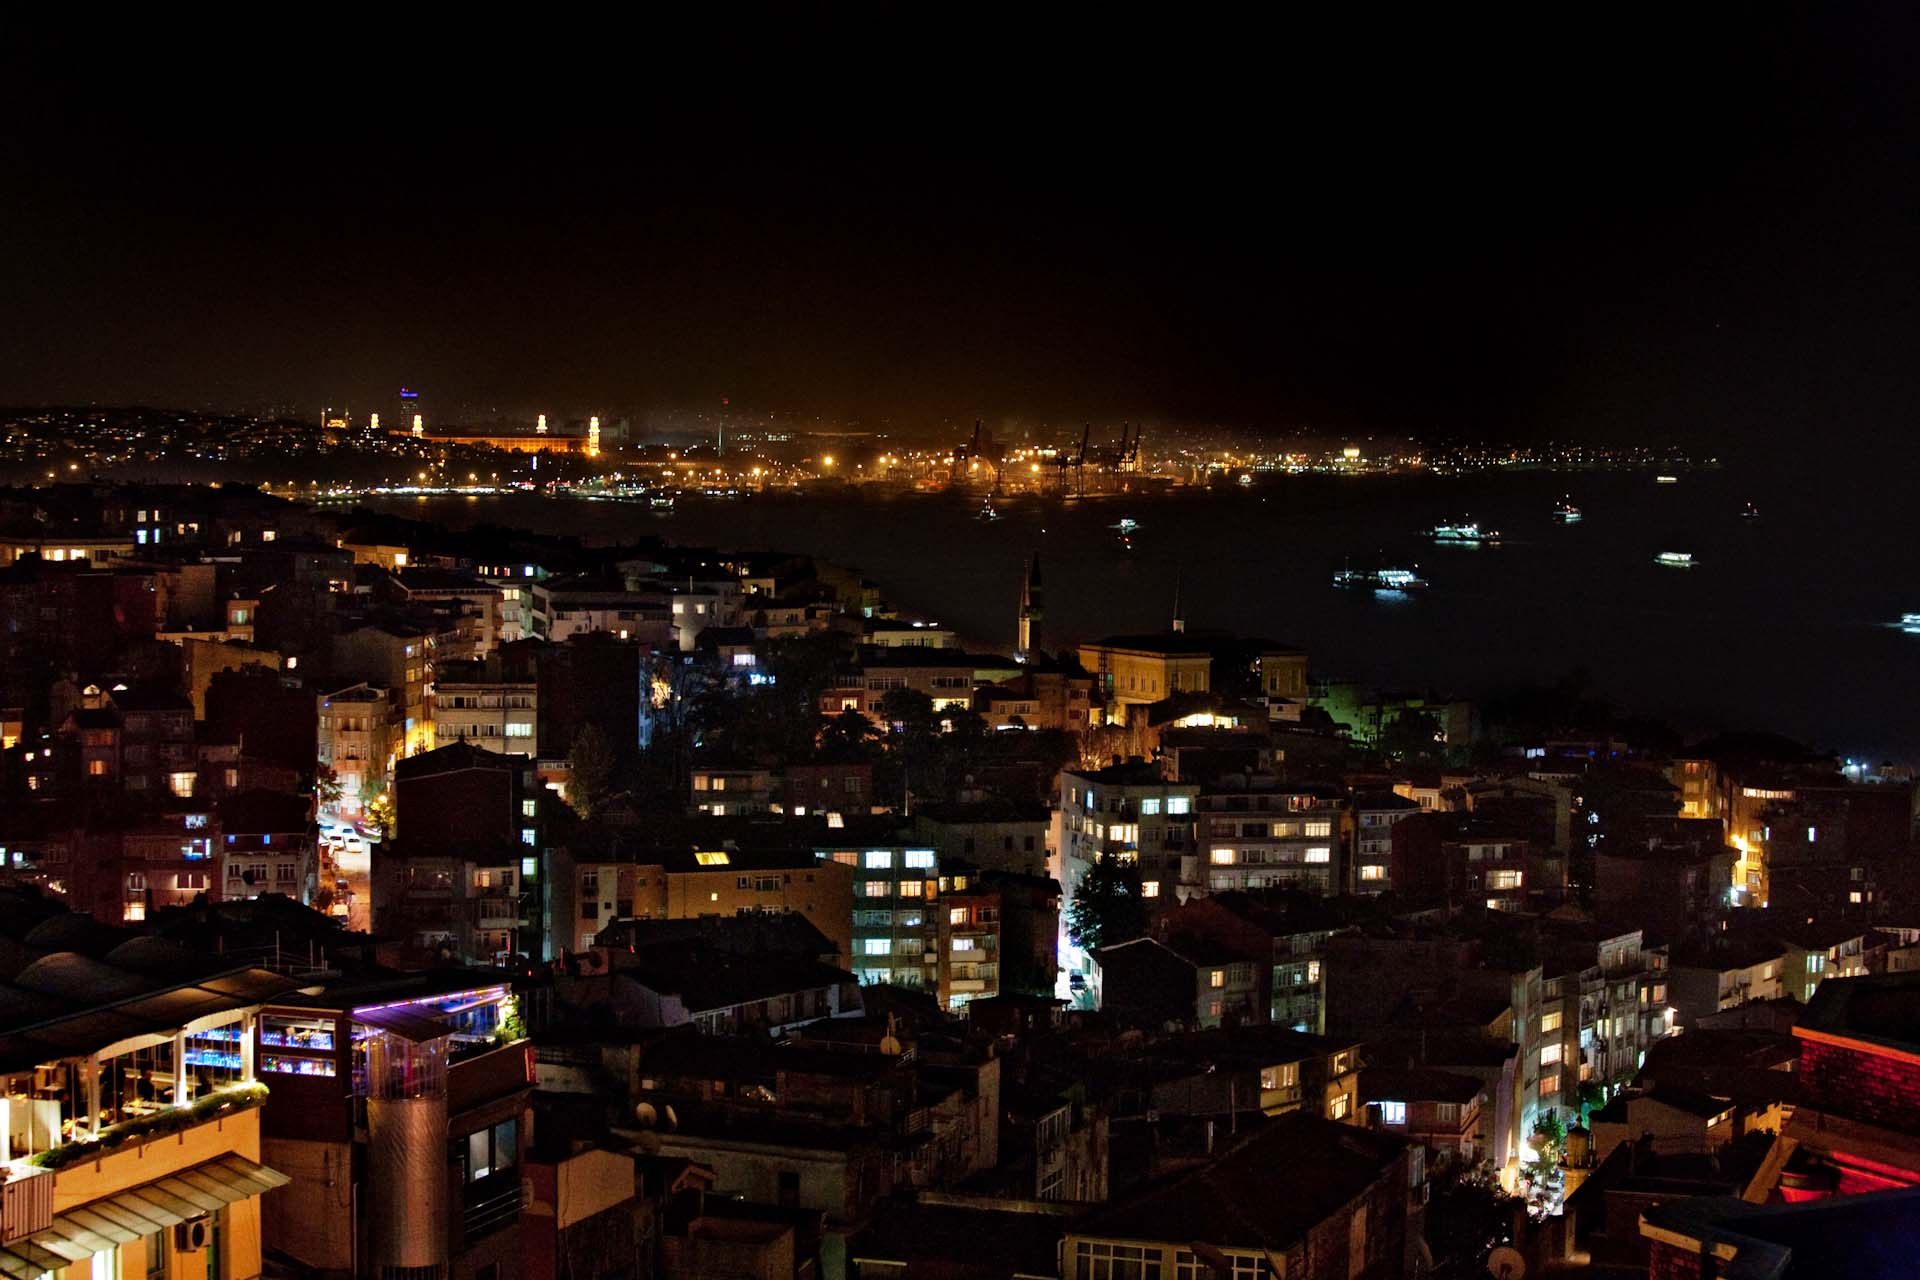 View from the 360istanbul.com in Beyoğlu, Cihangir, to the Bosporus